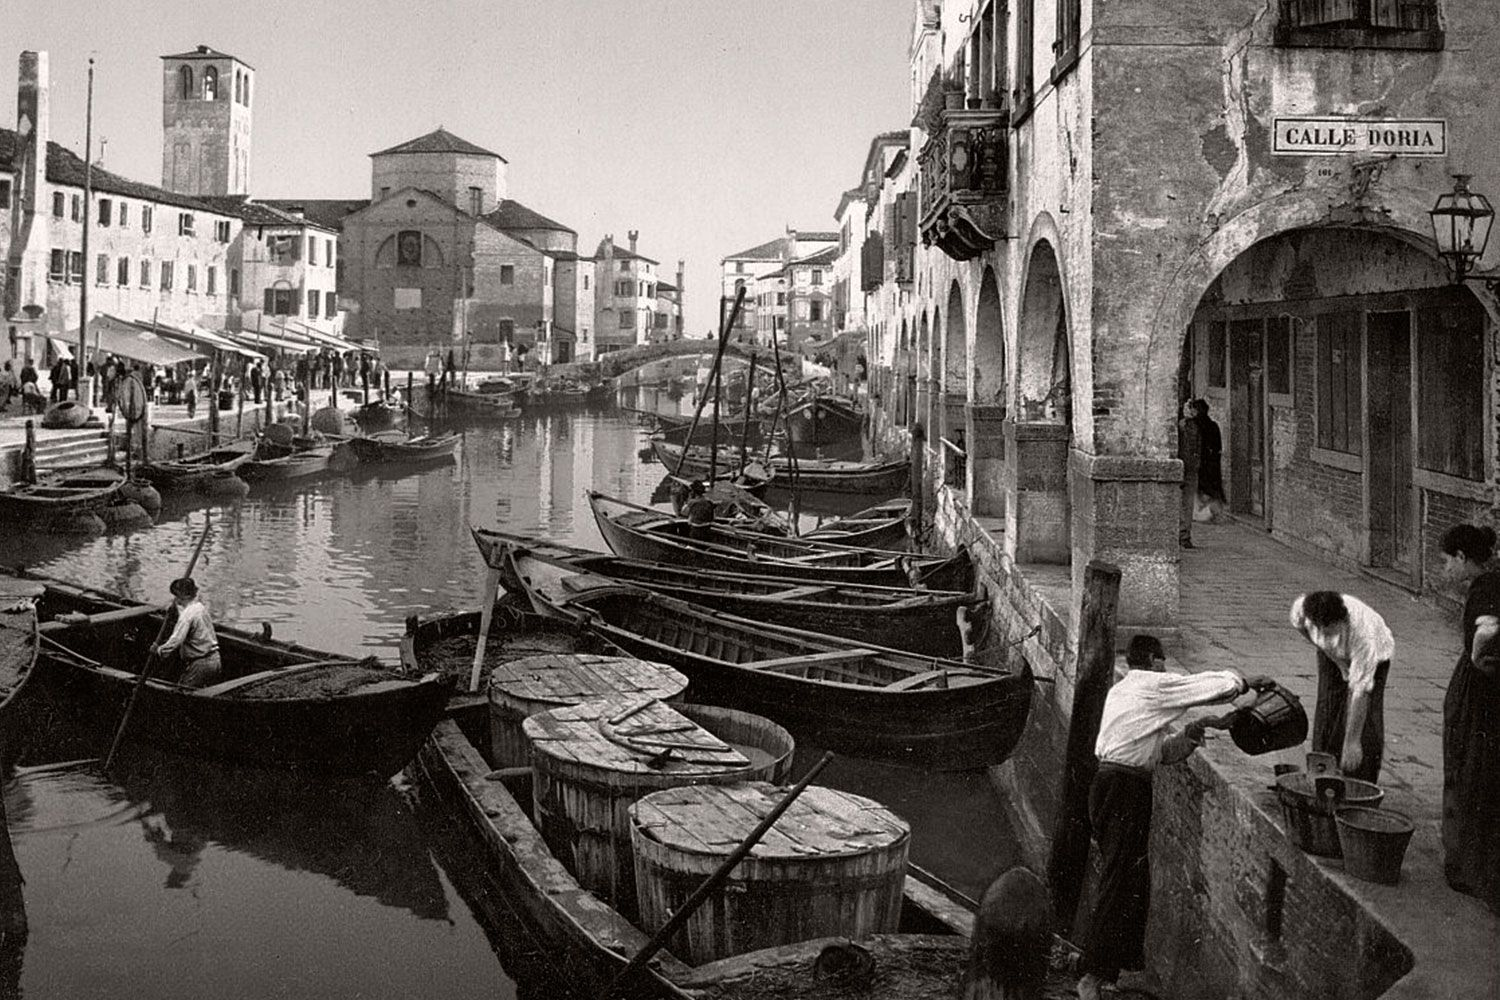 Early 19th century photo of delivery boats in Venice